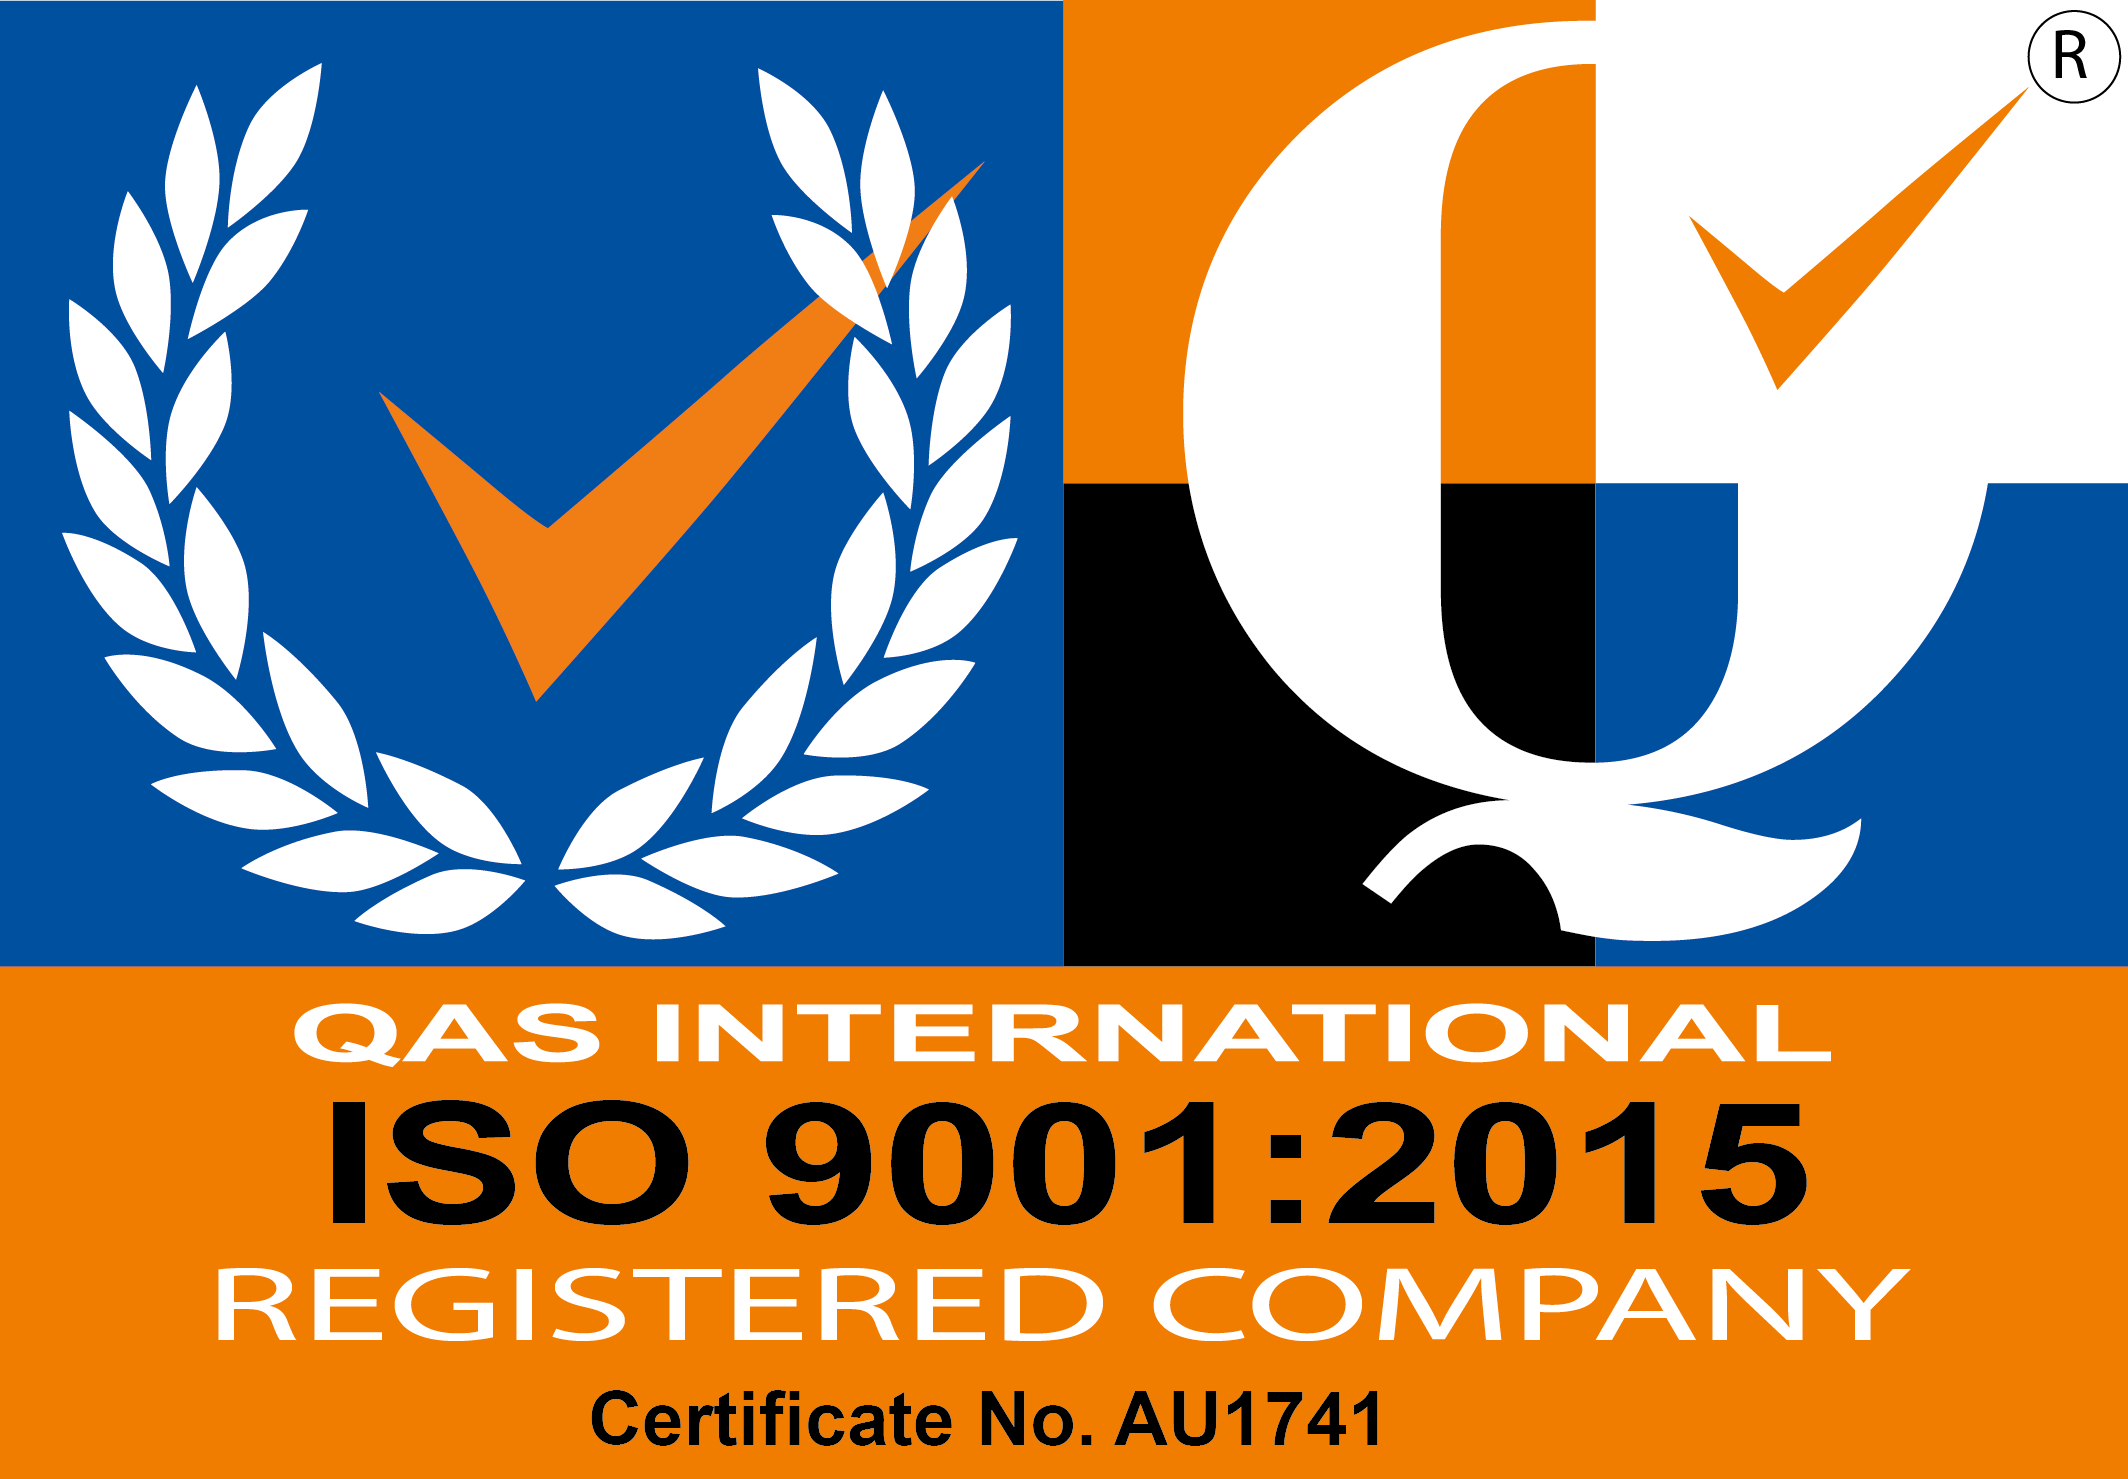 Drilltechniques achieves ISO 9001 Certification